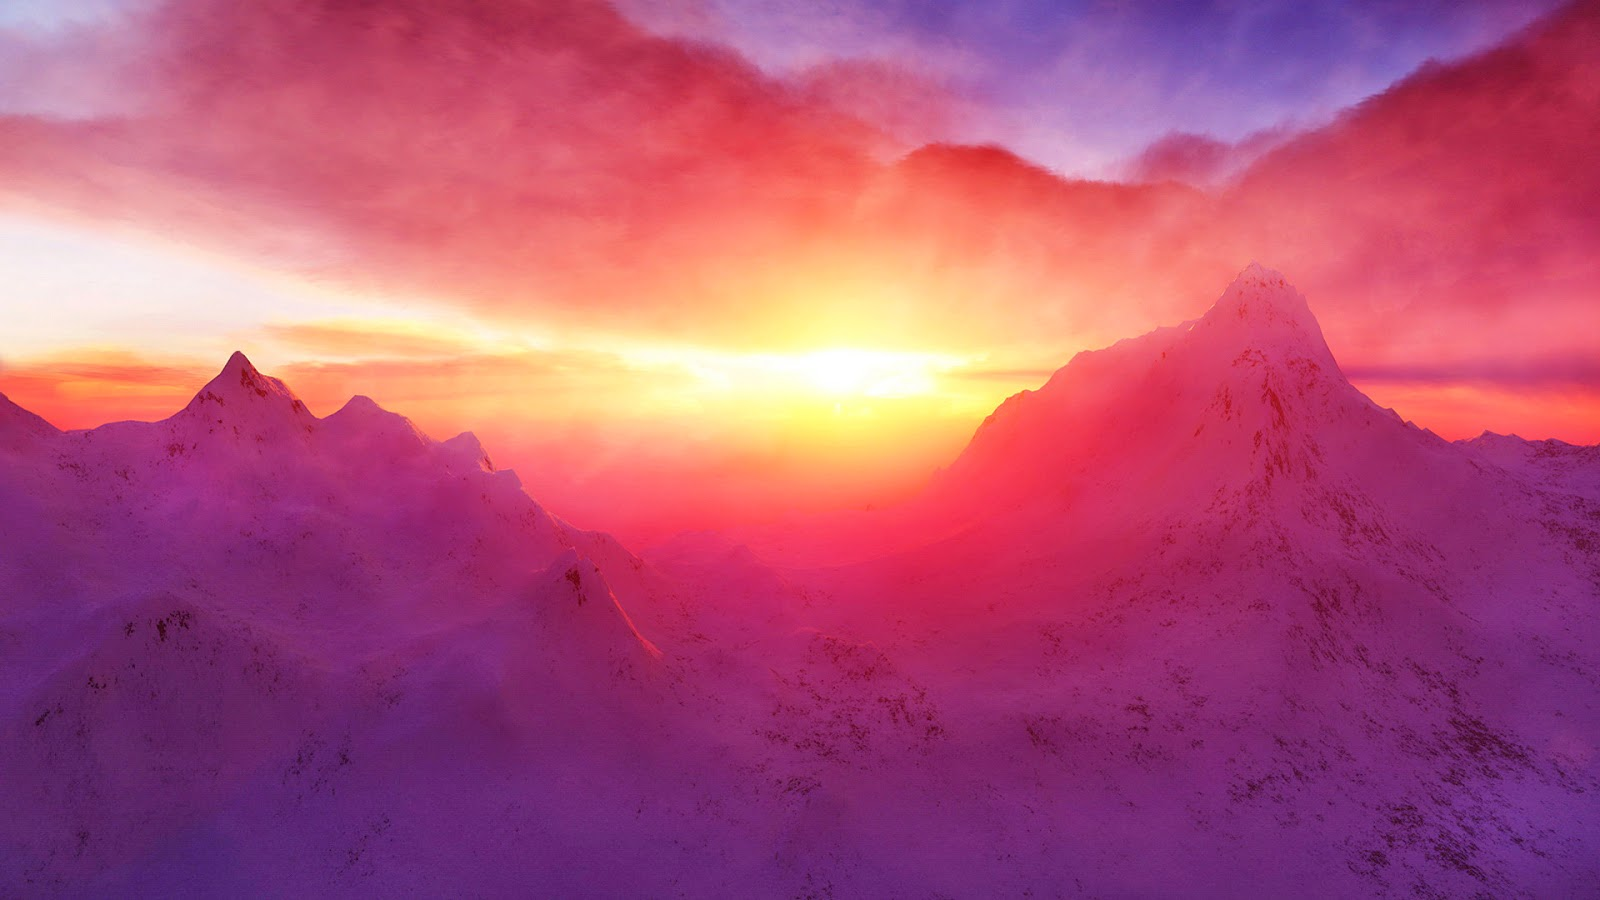 Sunset Snowy Mountain Wallpaper Snow Beautiful Nature Images And Wallpapers